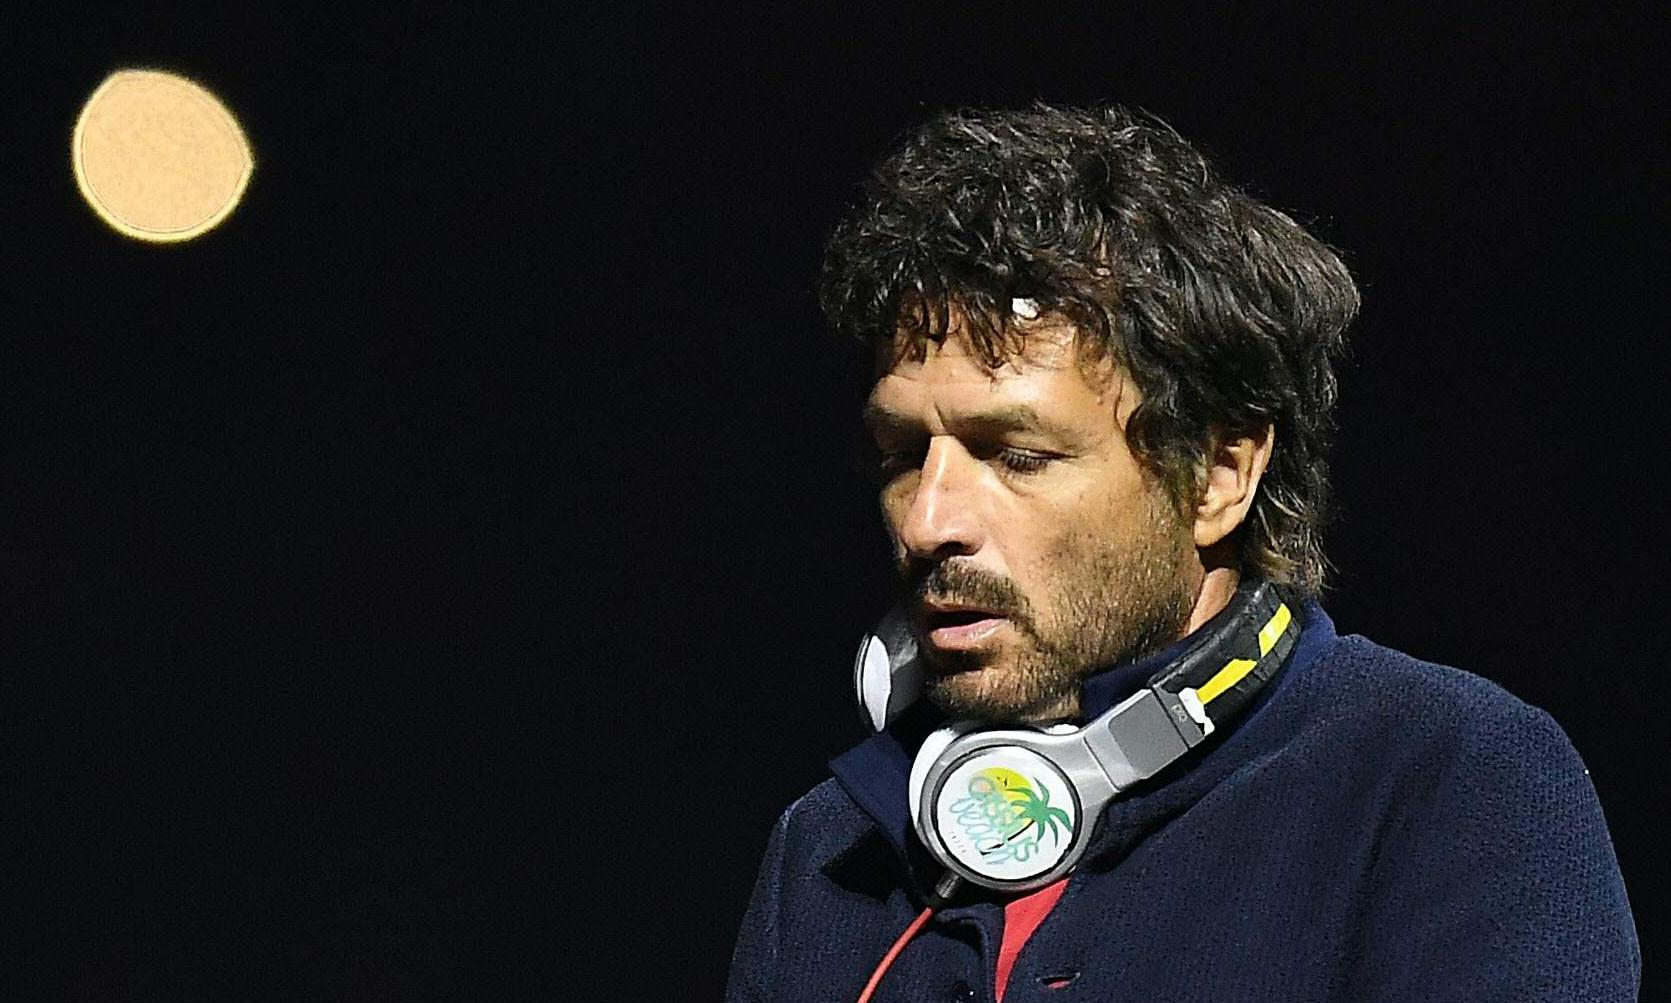 Cassius's Philippe Zdar dies in fall from Paris building